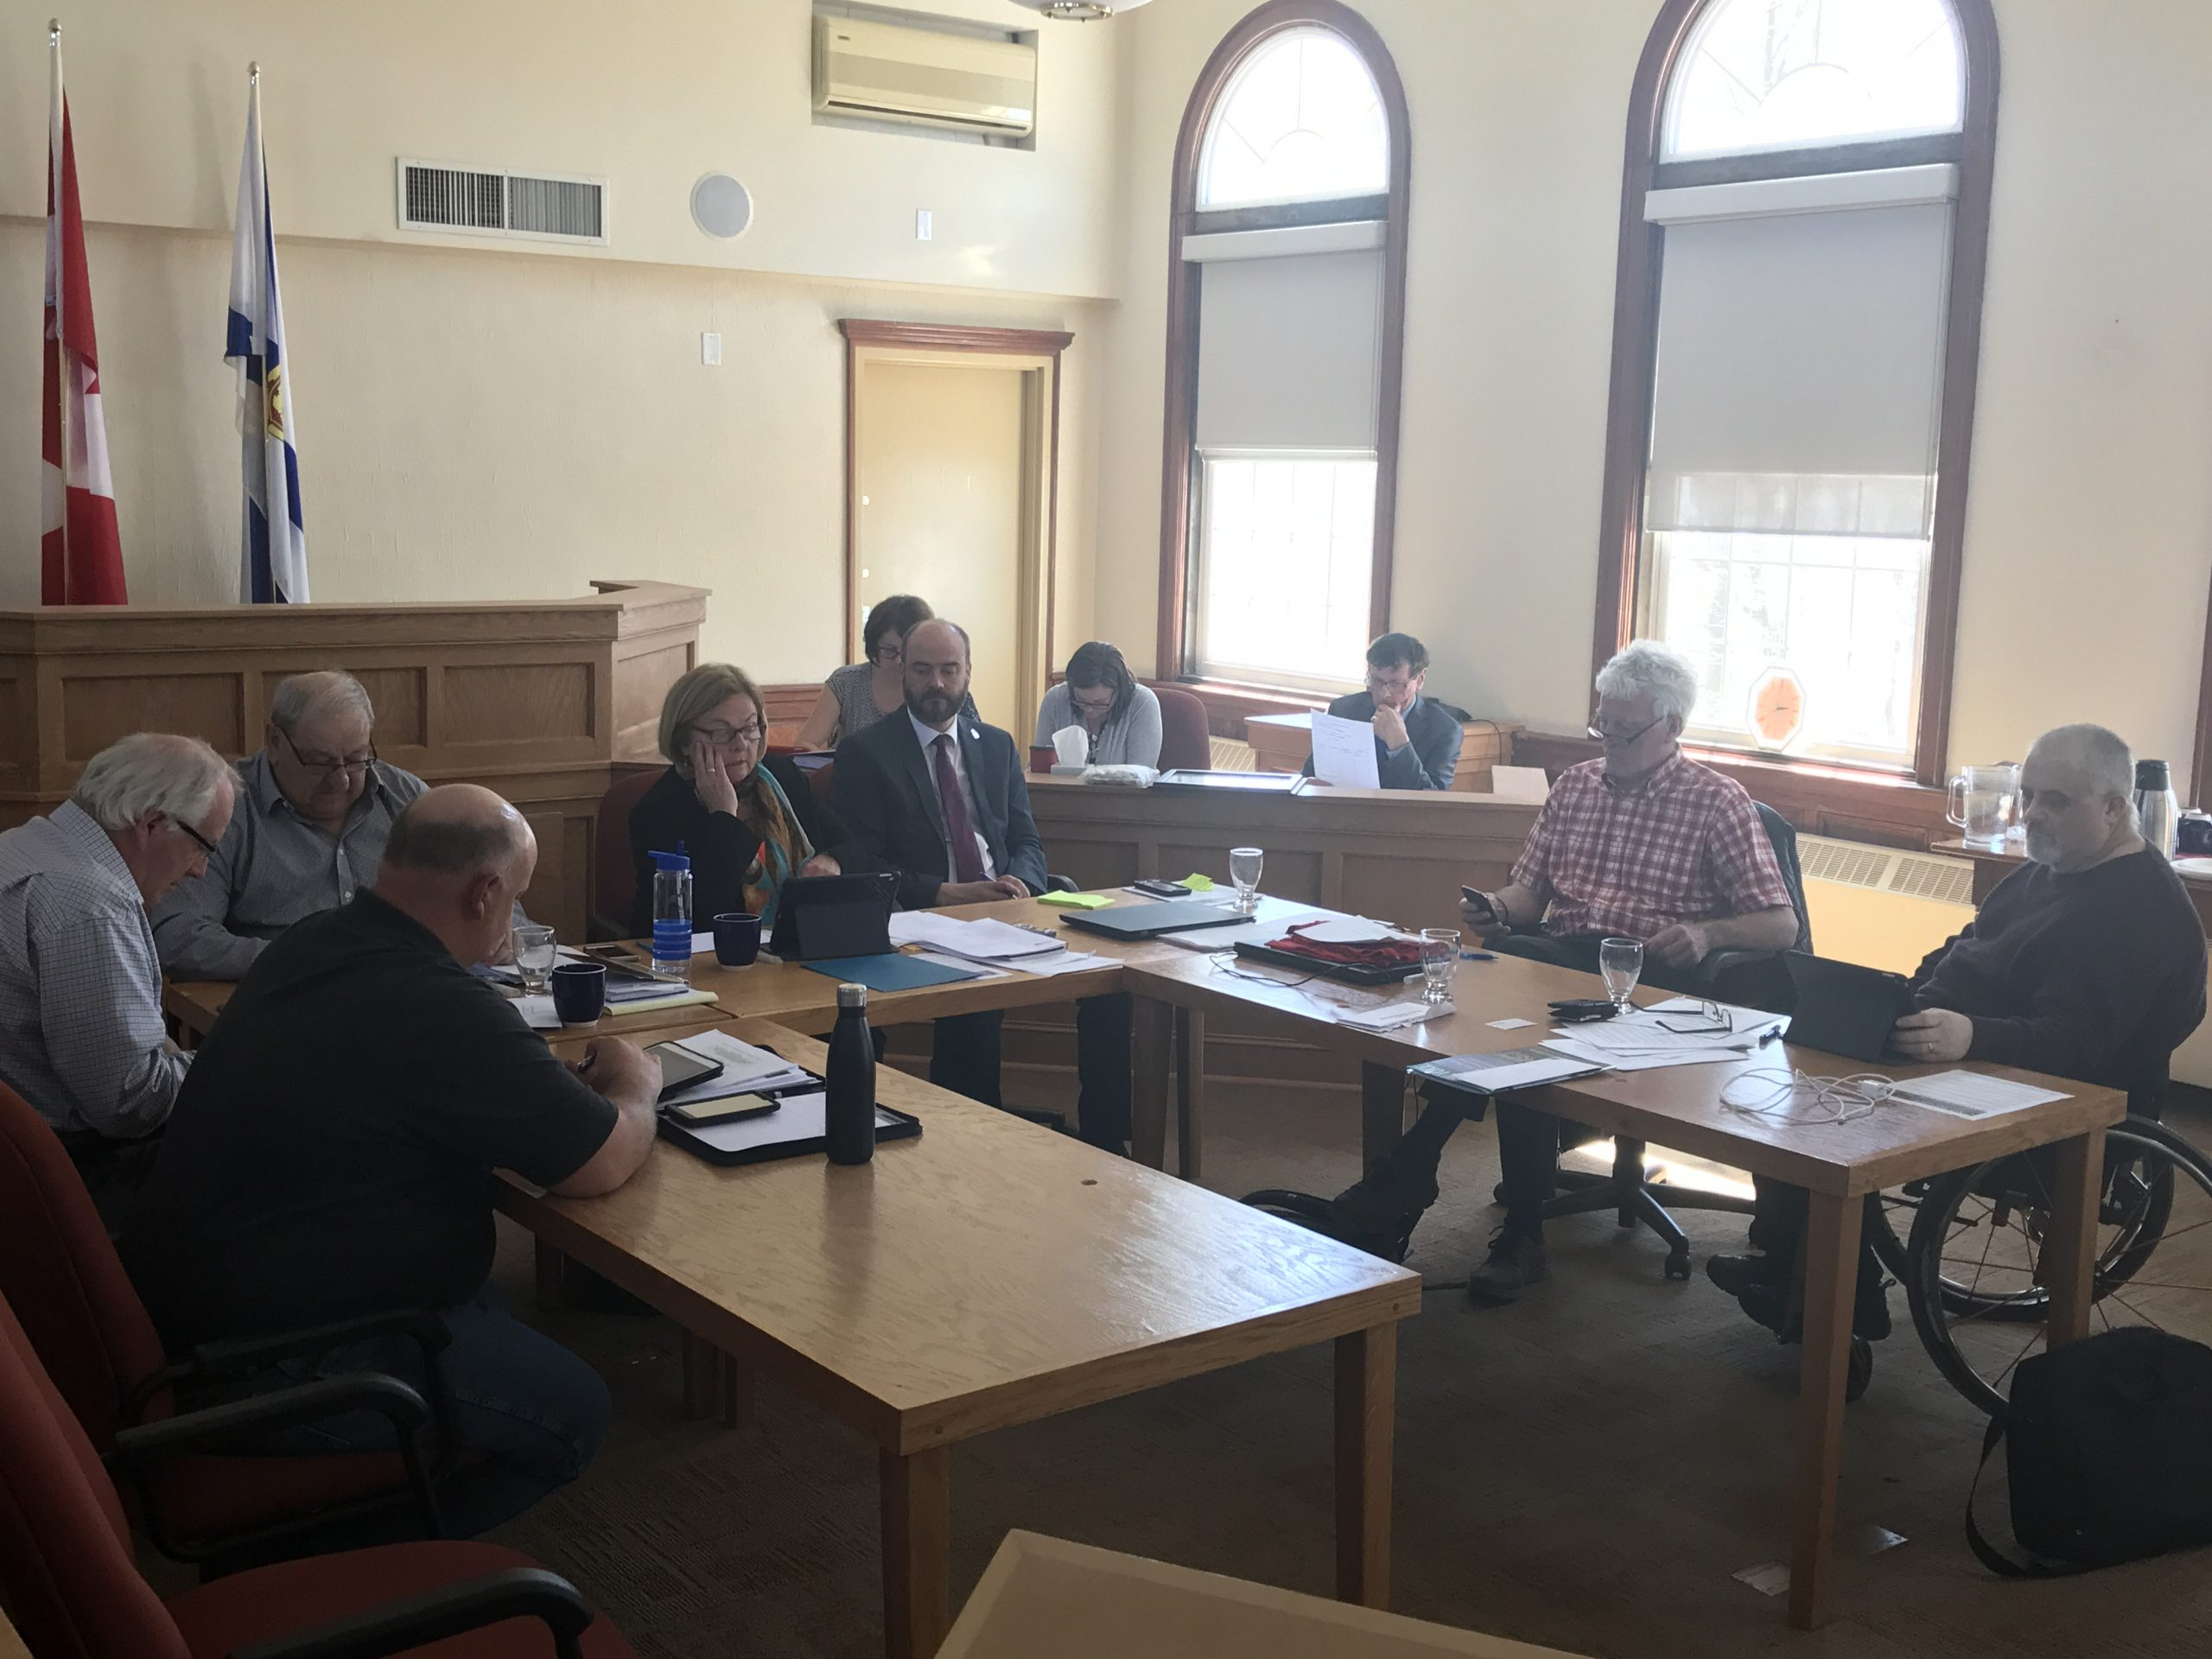 Warden says municipal officials hope to have budget finalized by end of May